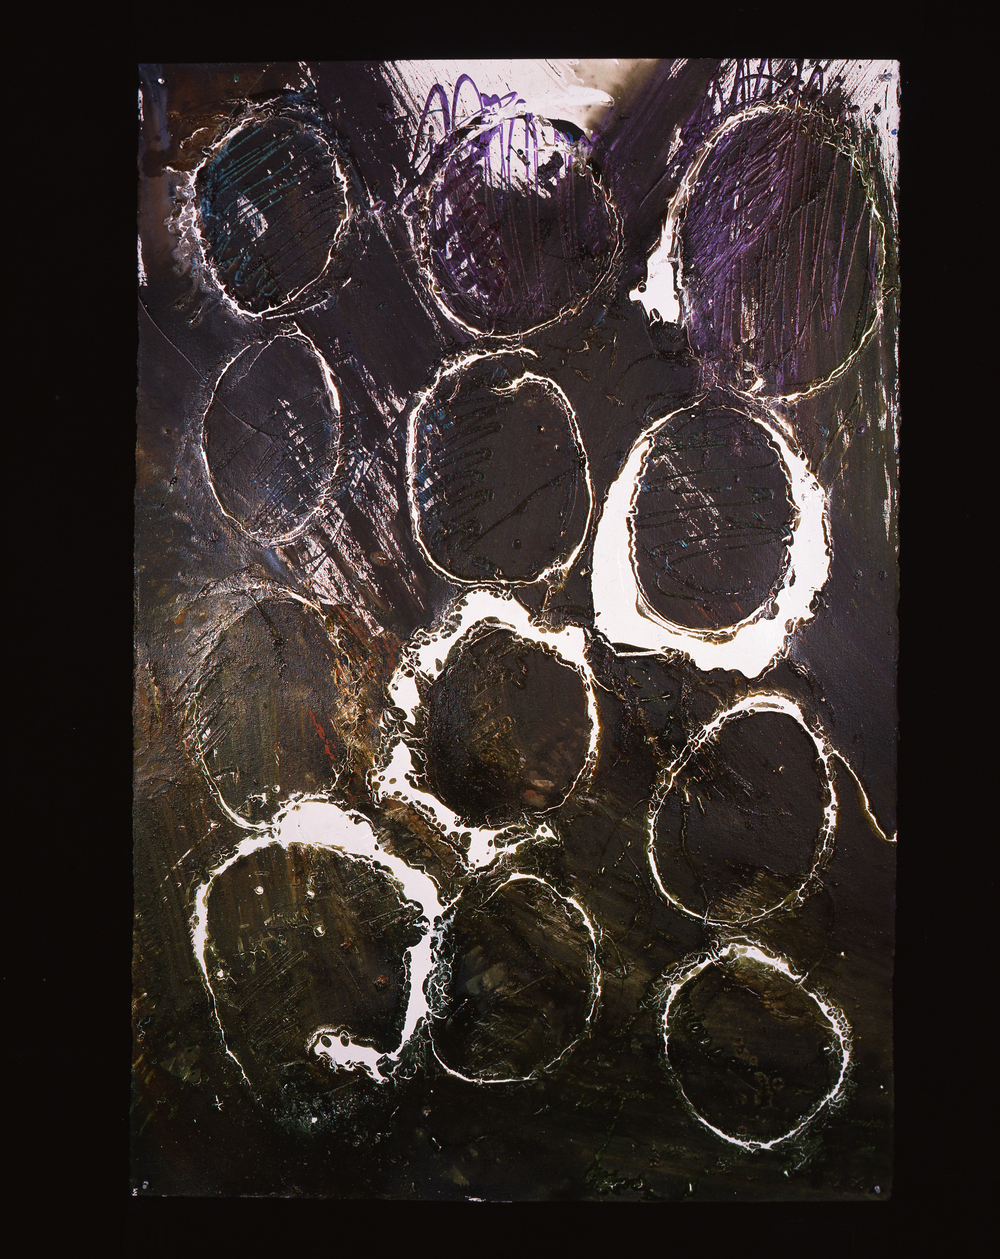 Dale Chihuly,  Macchia Drawing #17,  (1992, acrylic on paper, 60 x 40 inches), DC.92